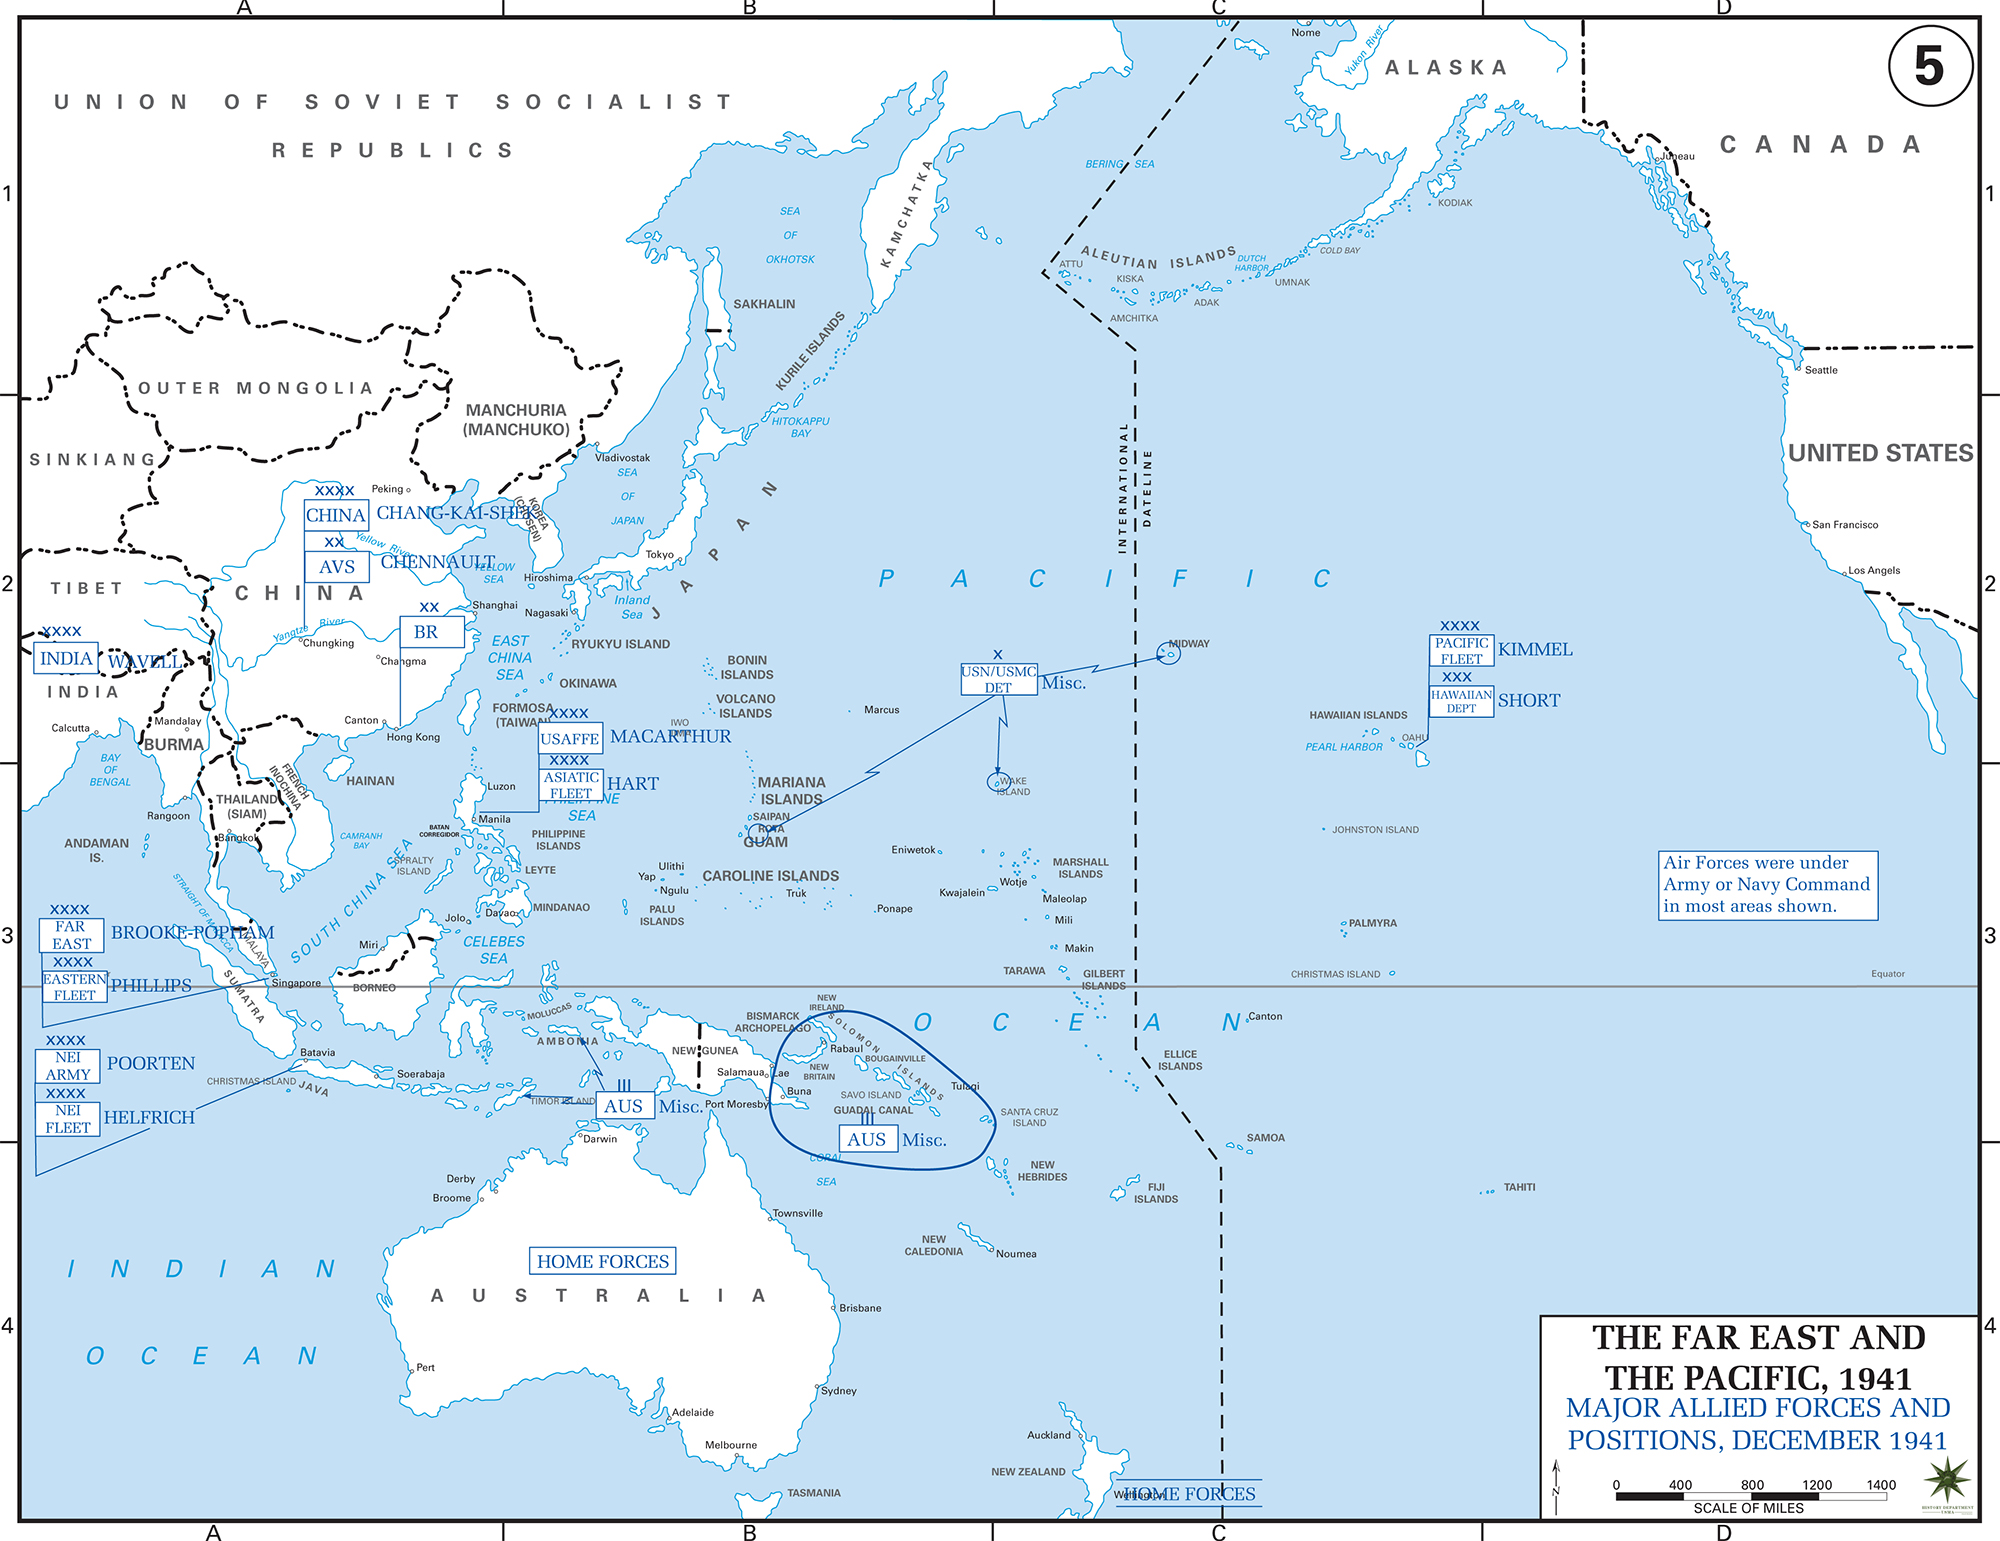 Map of World War II: The Far East and the Pacific 1941. Major Allied Forces and